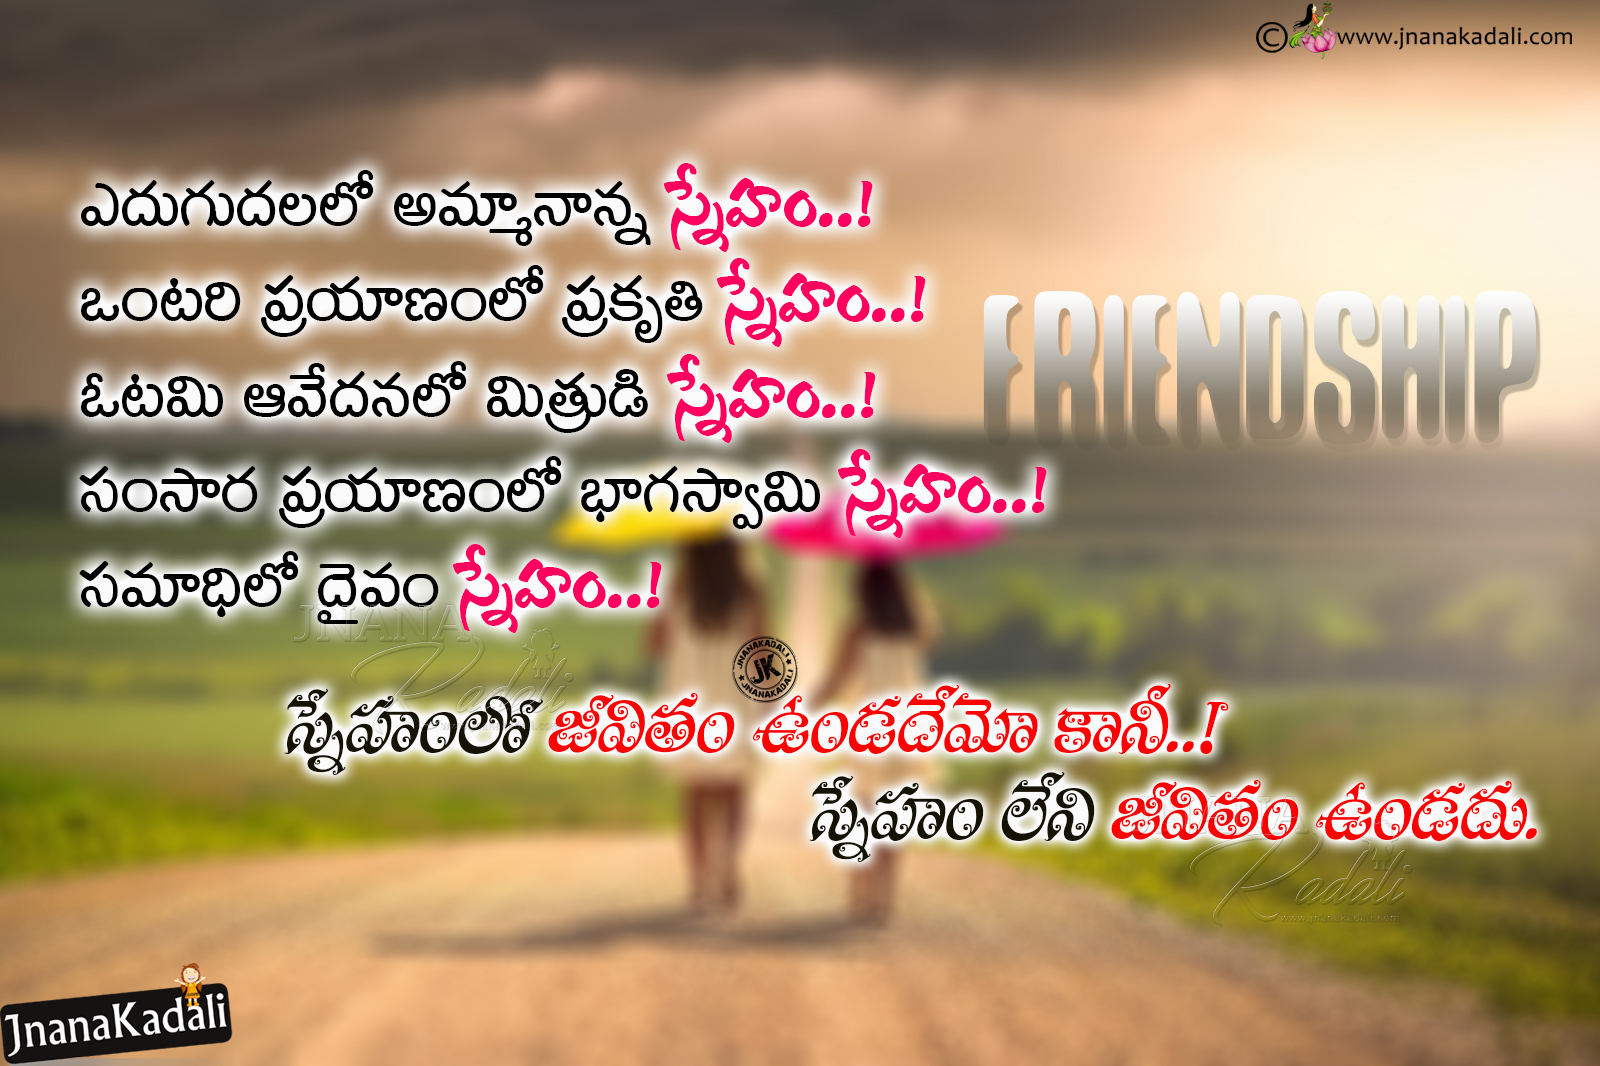 Touching Quotes About Friendship Brilliant Latest Best Telugu Friendship Heart Touching Quotes With Cute